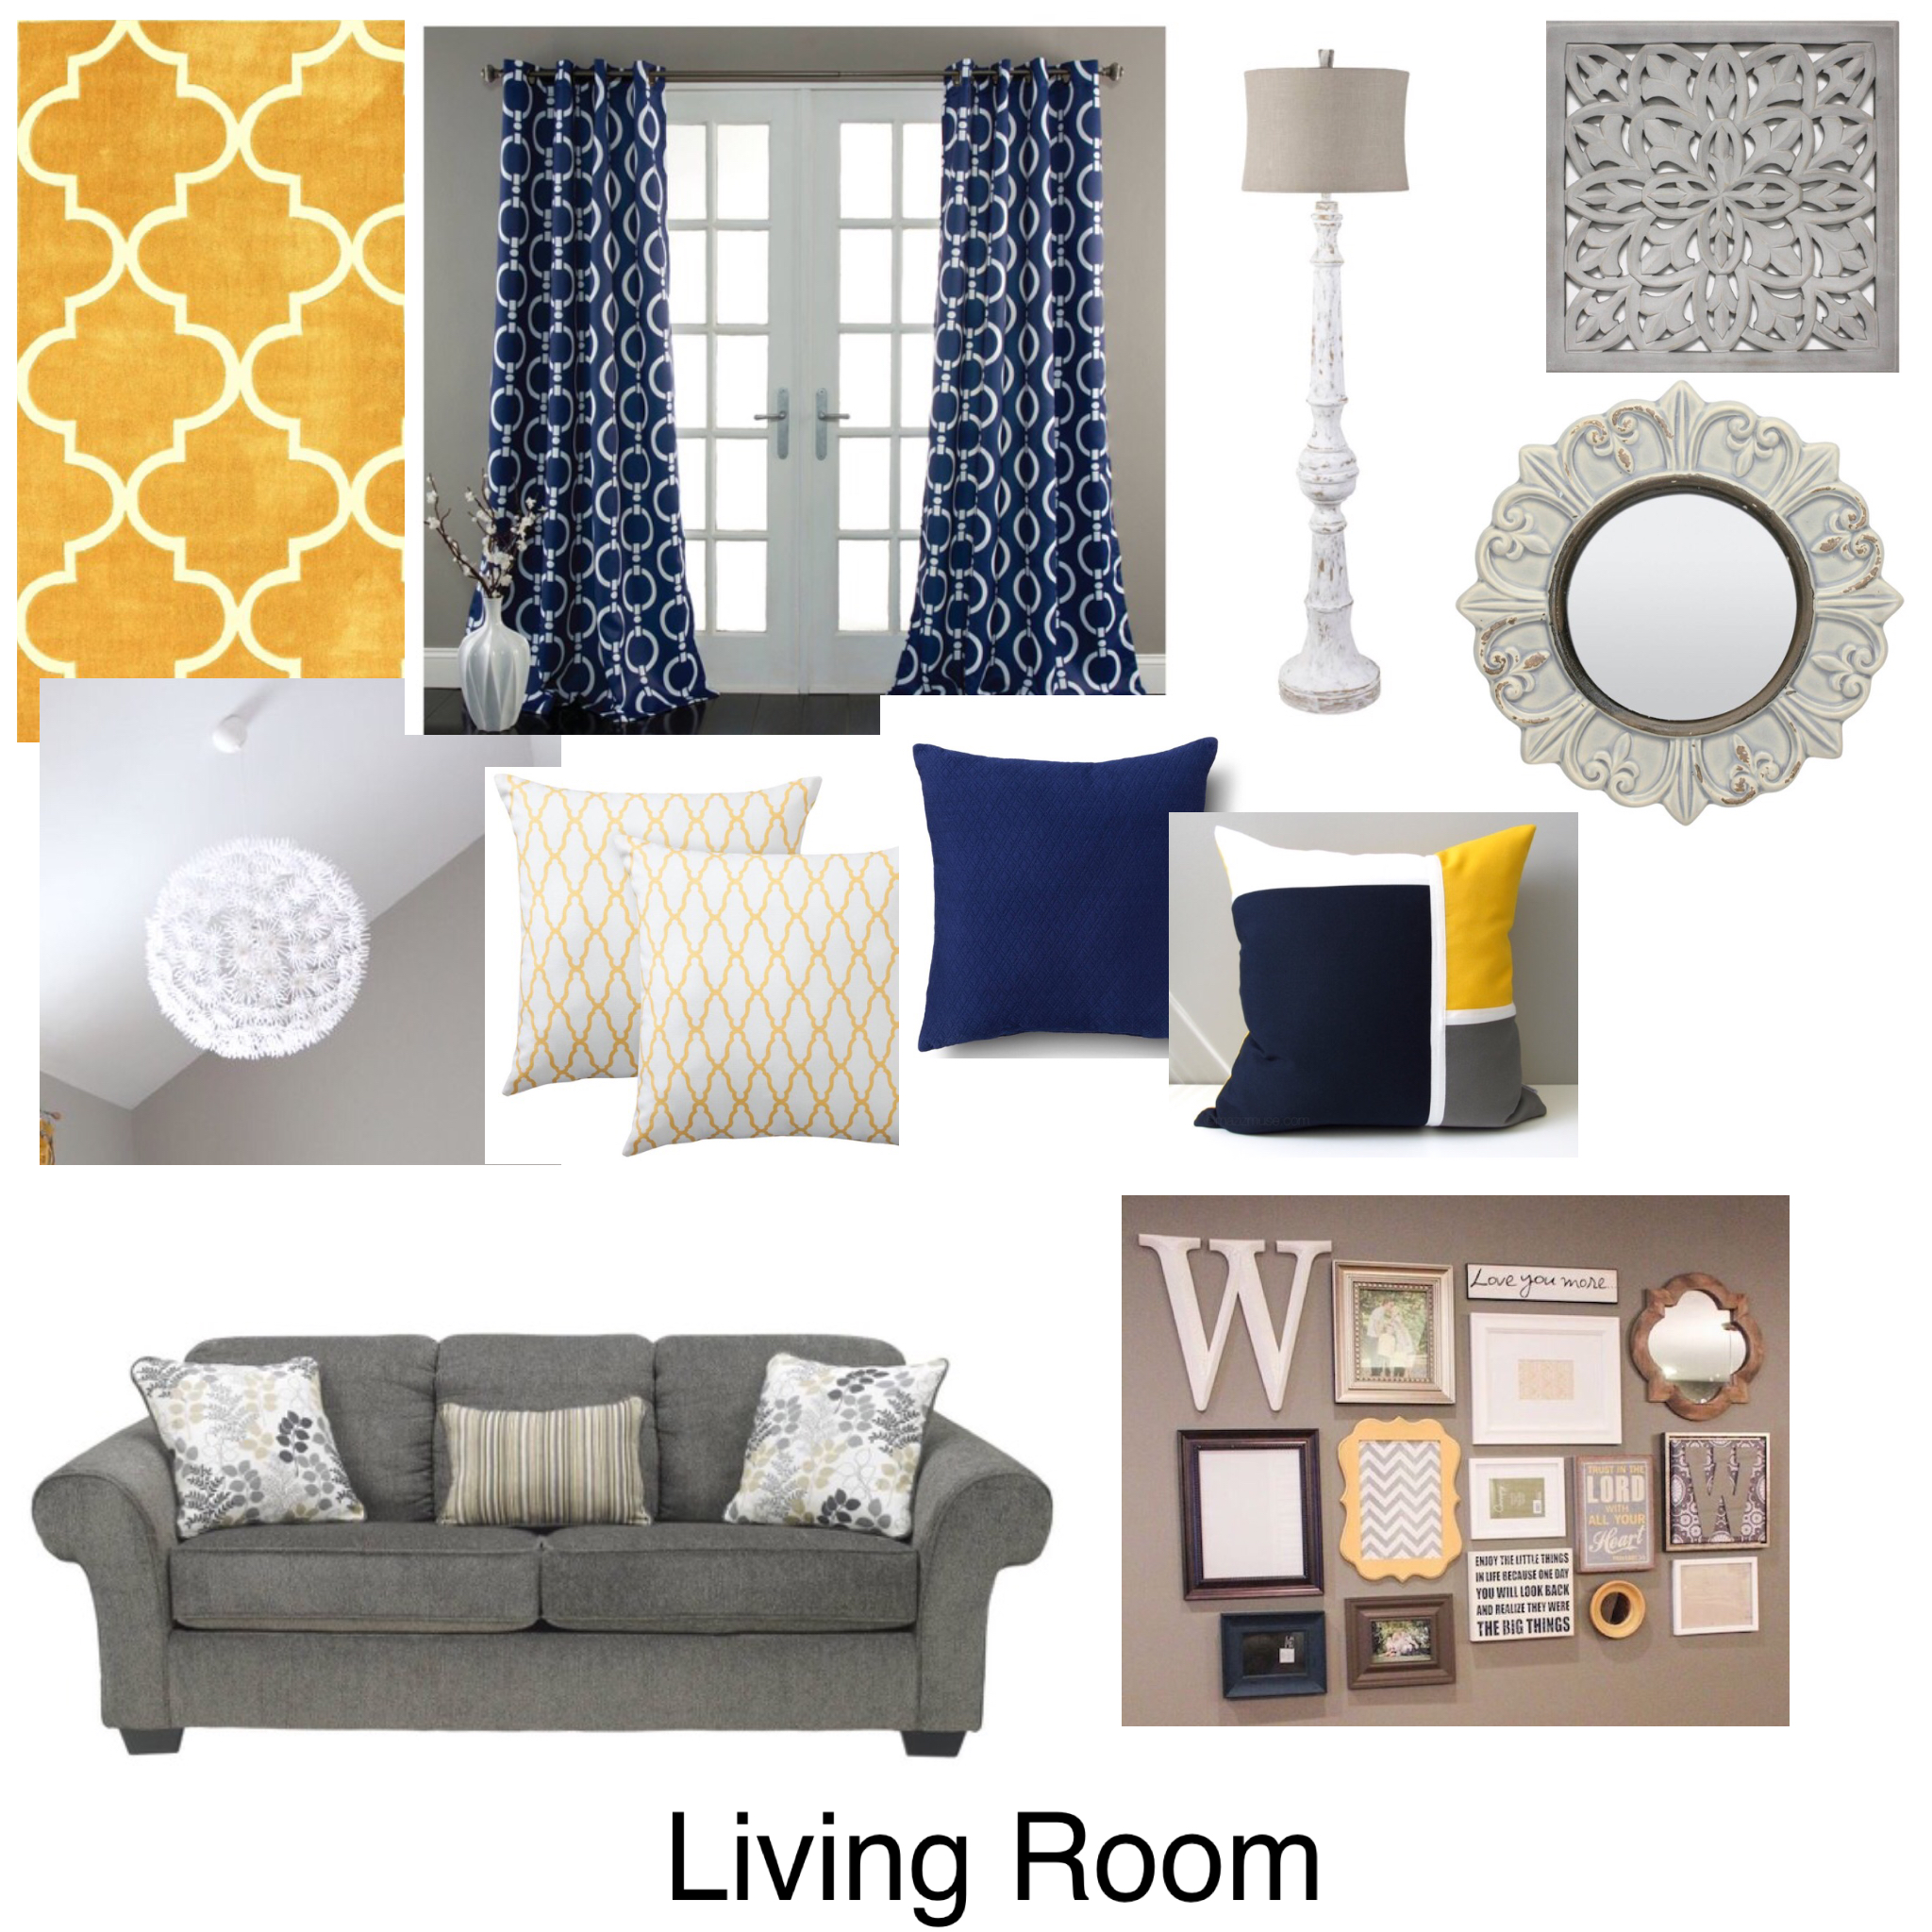 yellow blue white and grey mood board for decorating